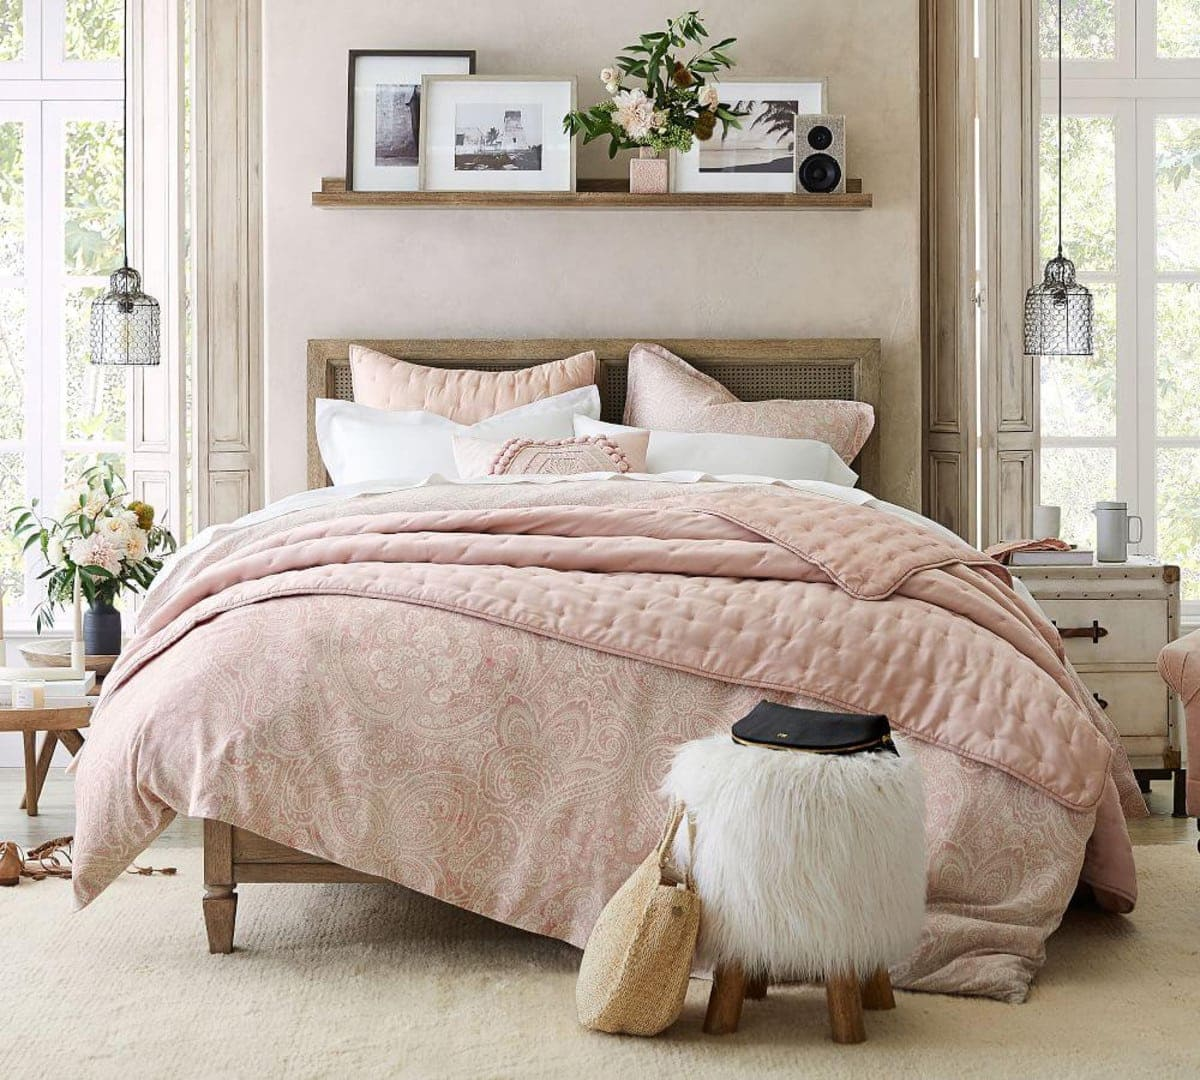 bedroom-with-picture-ledge-above-headboard-and-pink-quilt-cover-set